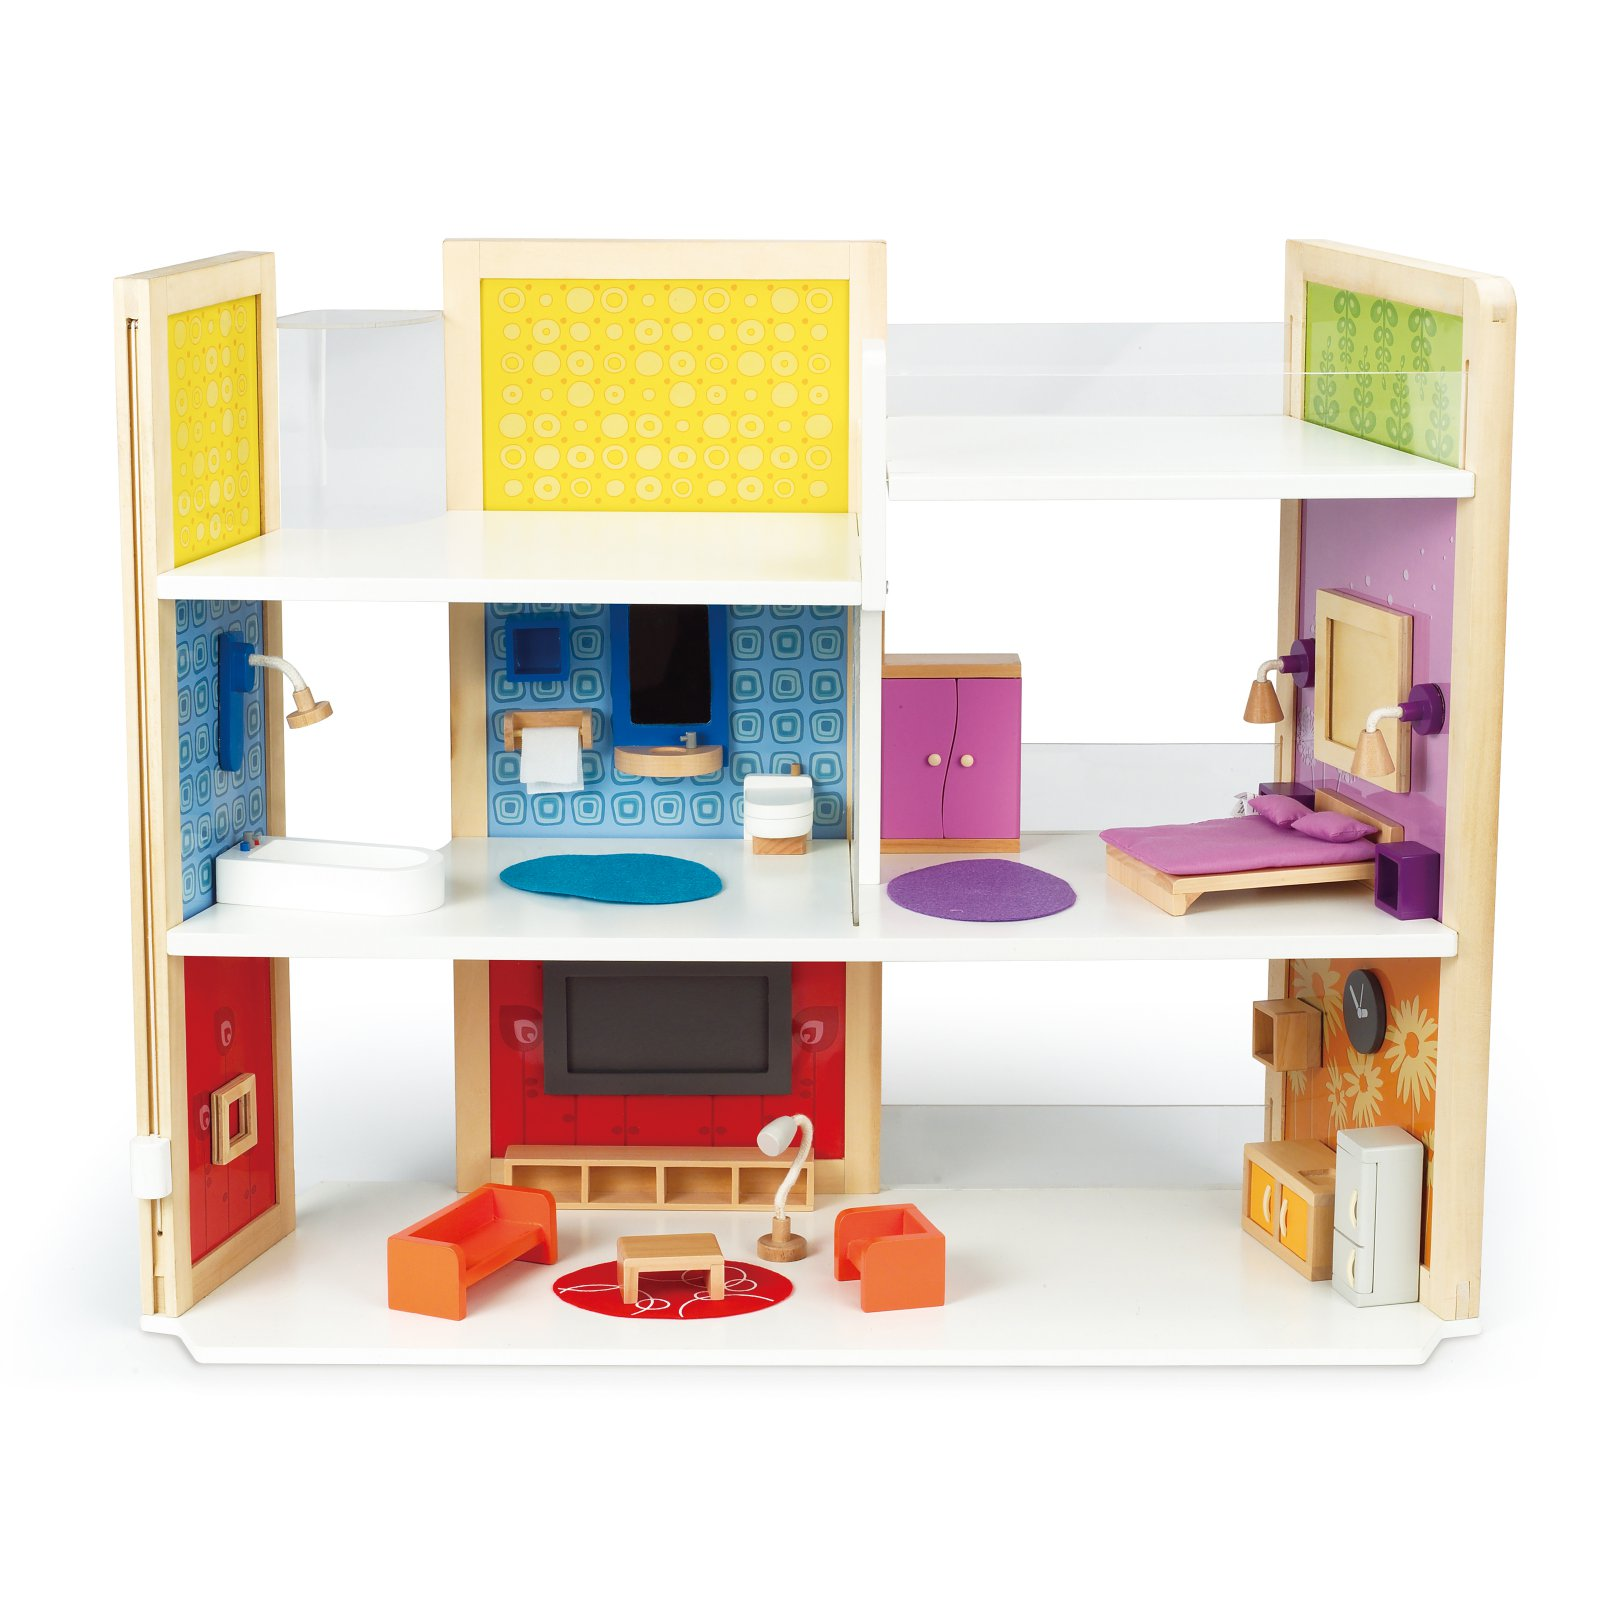 Hape-DIY Dream House